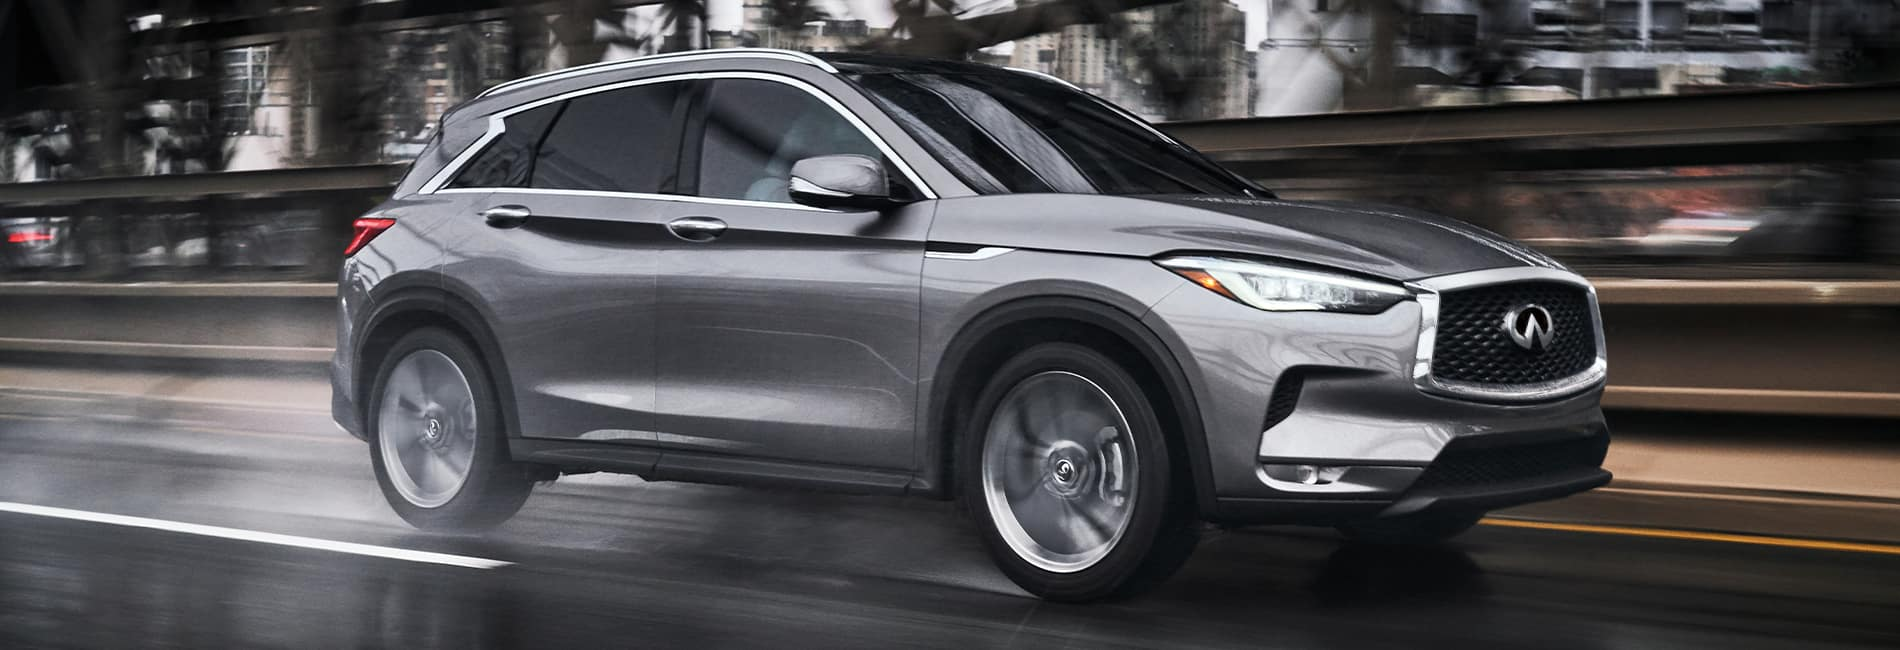 2020 INFINITI QX50 for Sale in Merrillville, IN